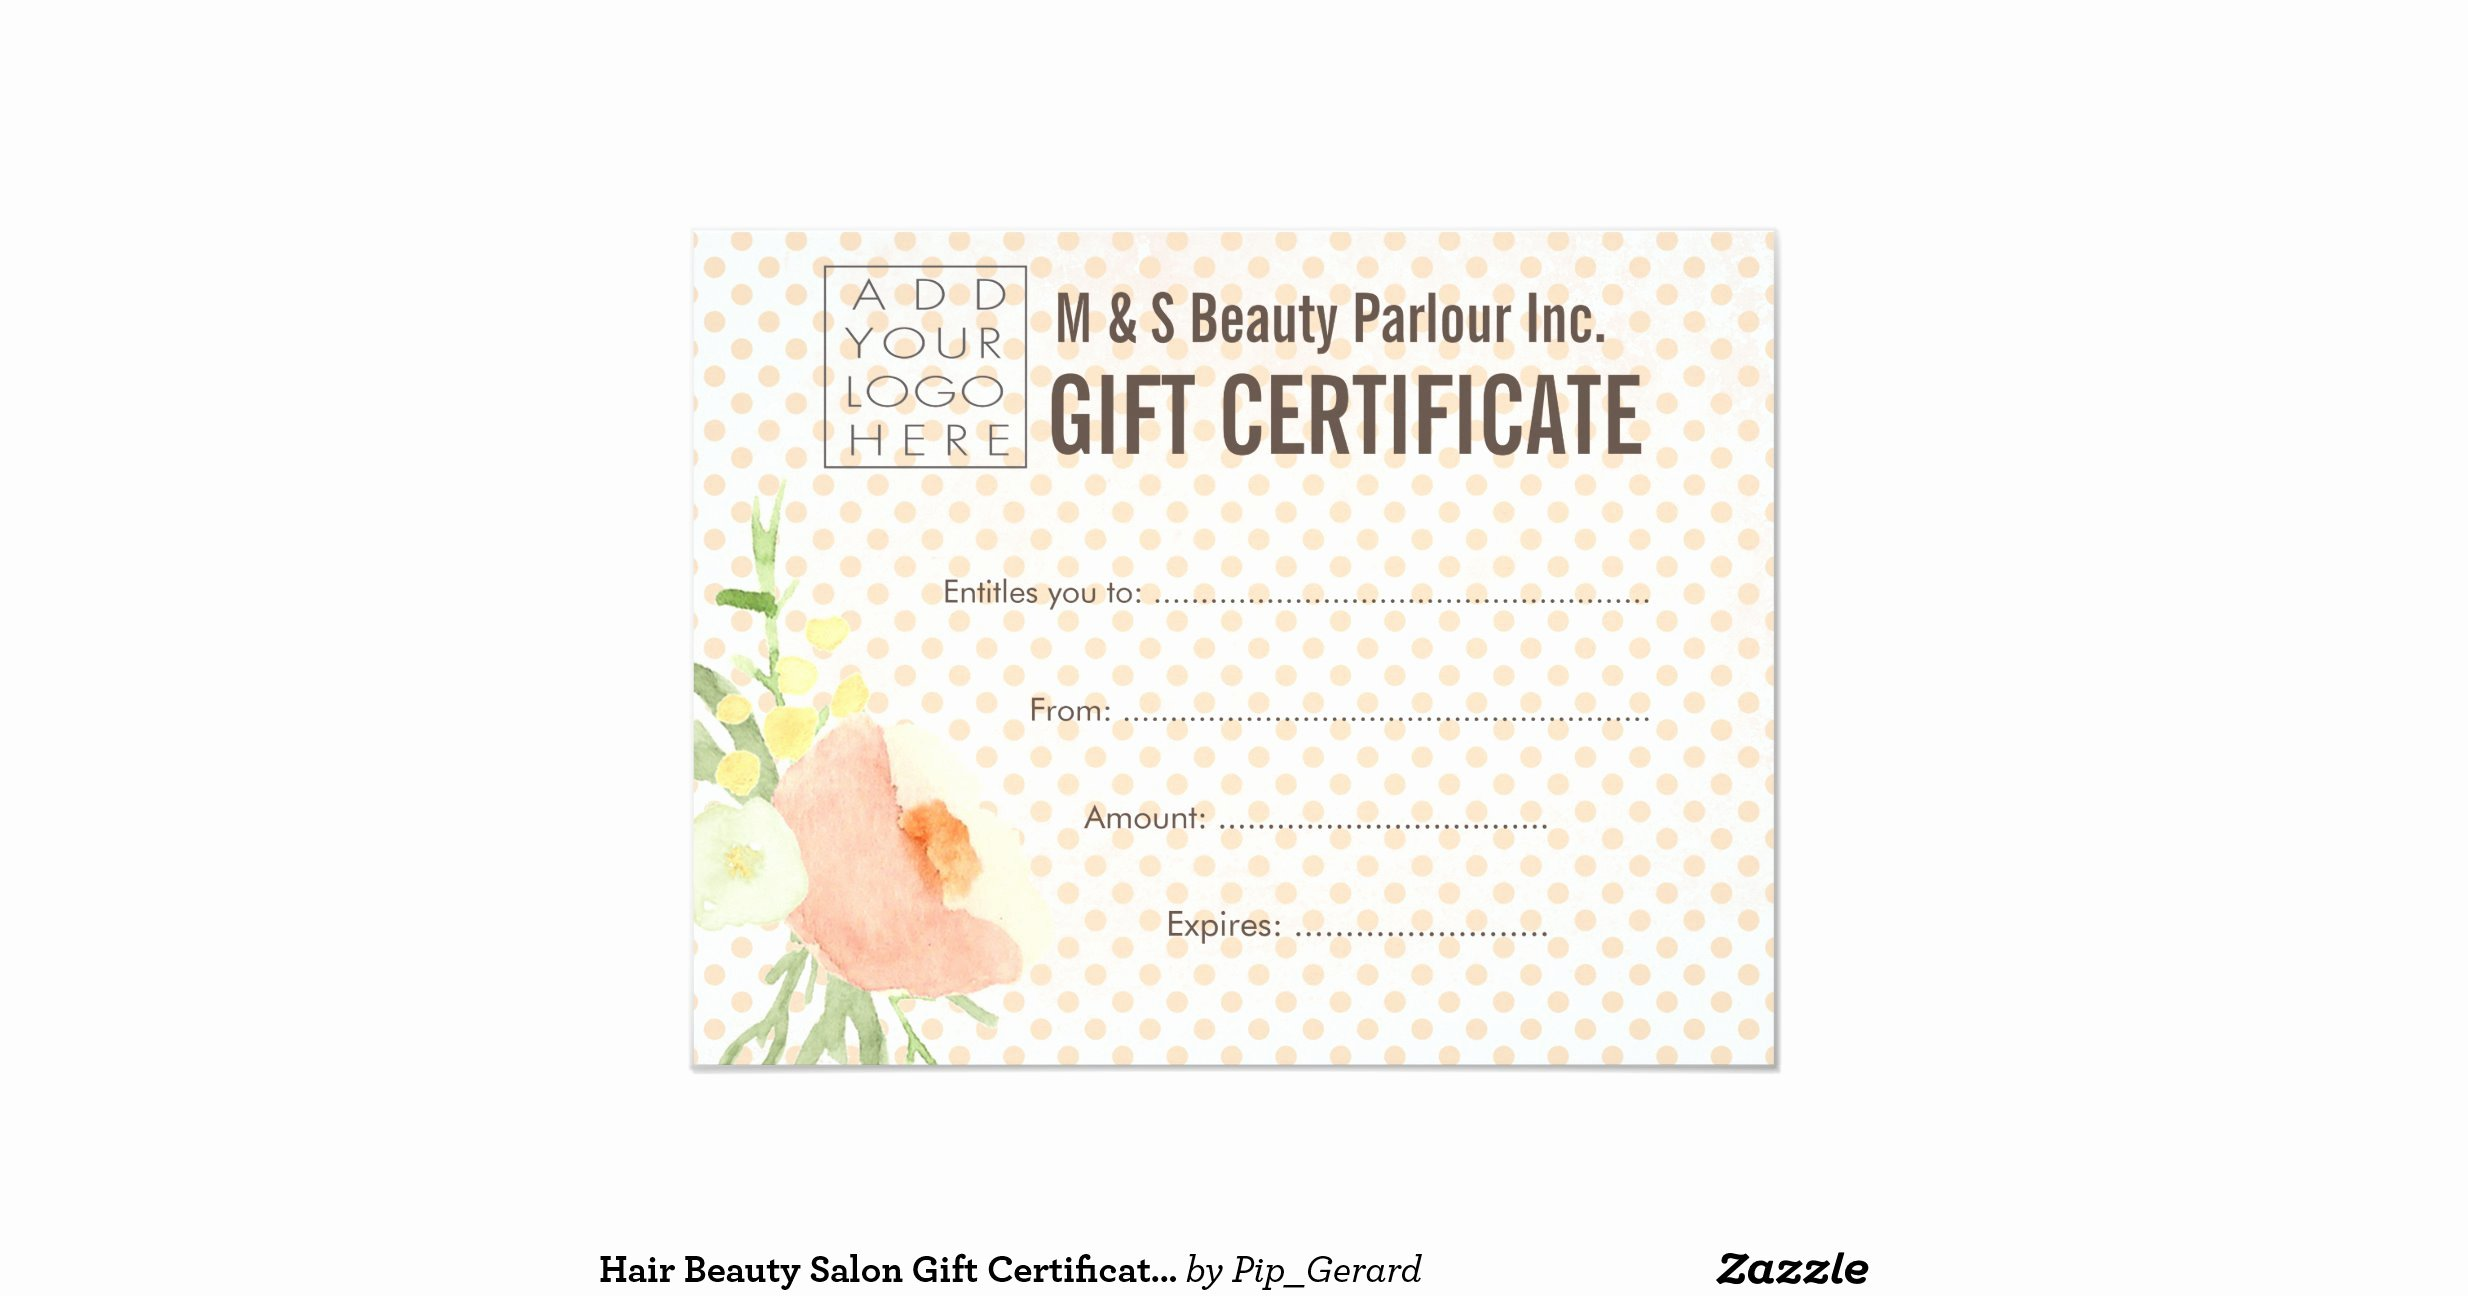 Hair Salon Gift Certificate Template Free Fresh Hair Beauty Salon Gift Certificate Template 11 Cm X 14 Cm